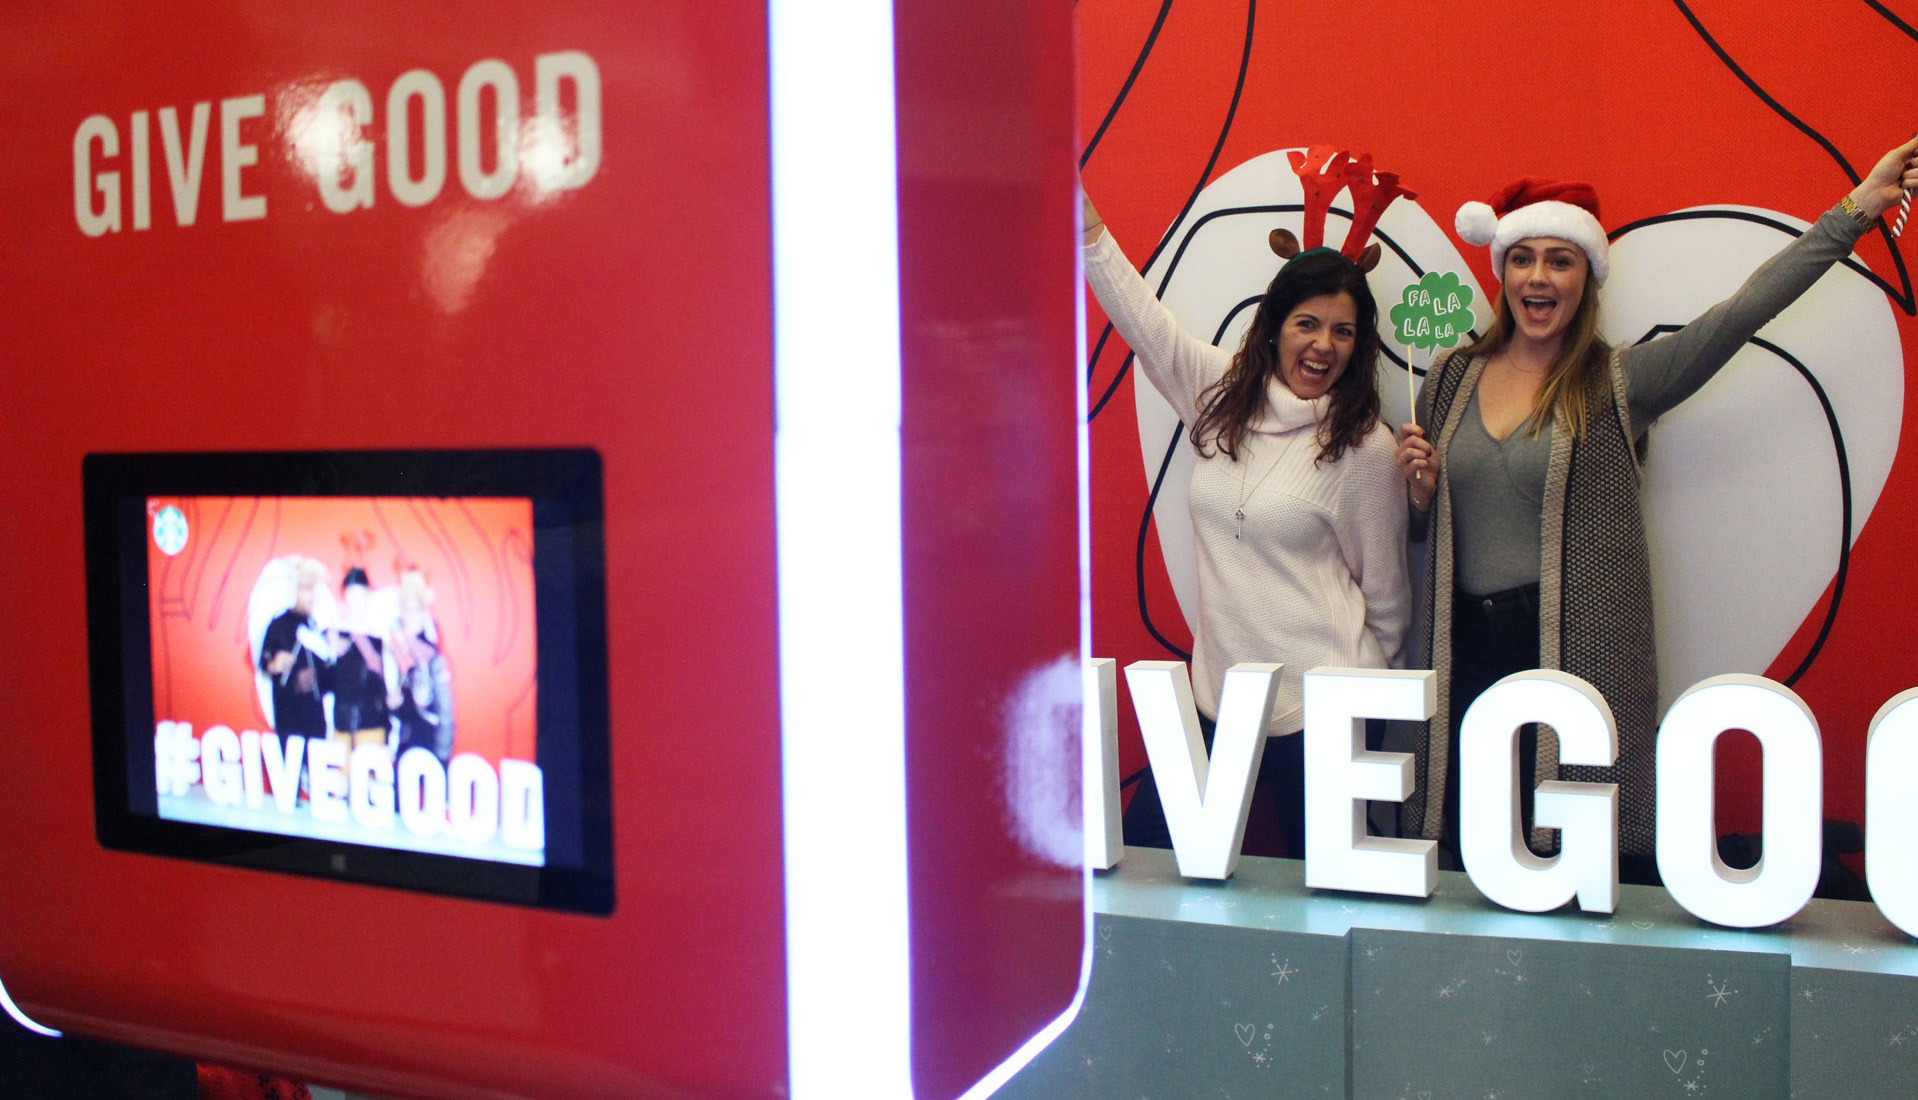 Photo Booth Rental Services Give good infinity booth christmas event Toronto